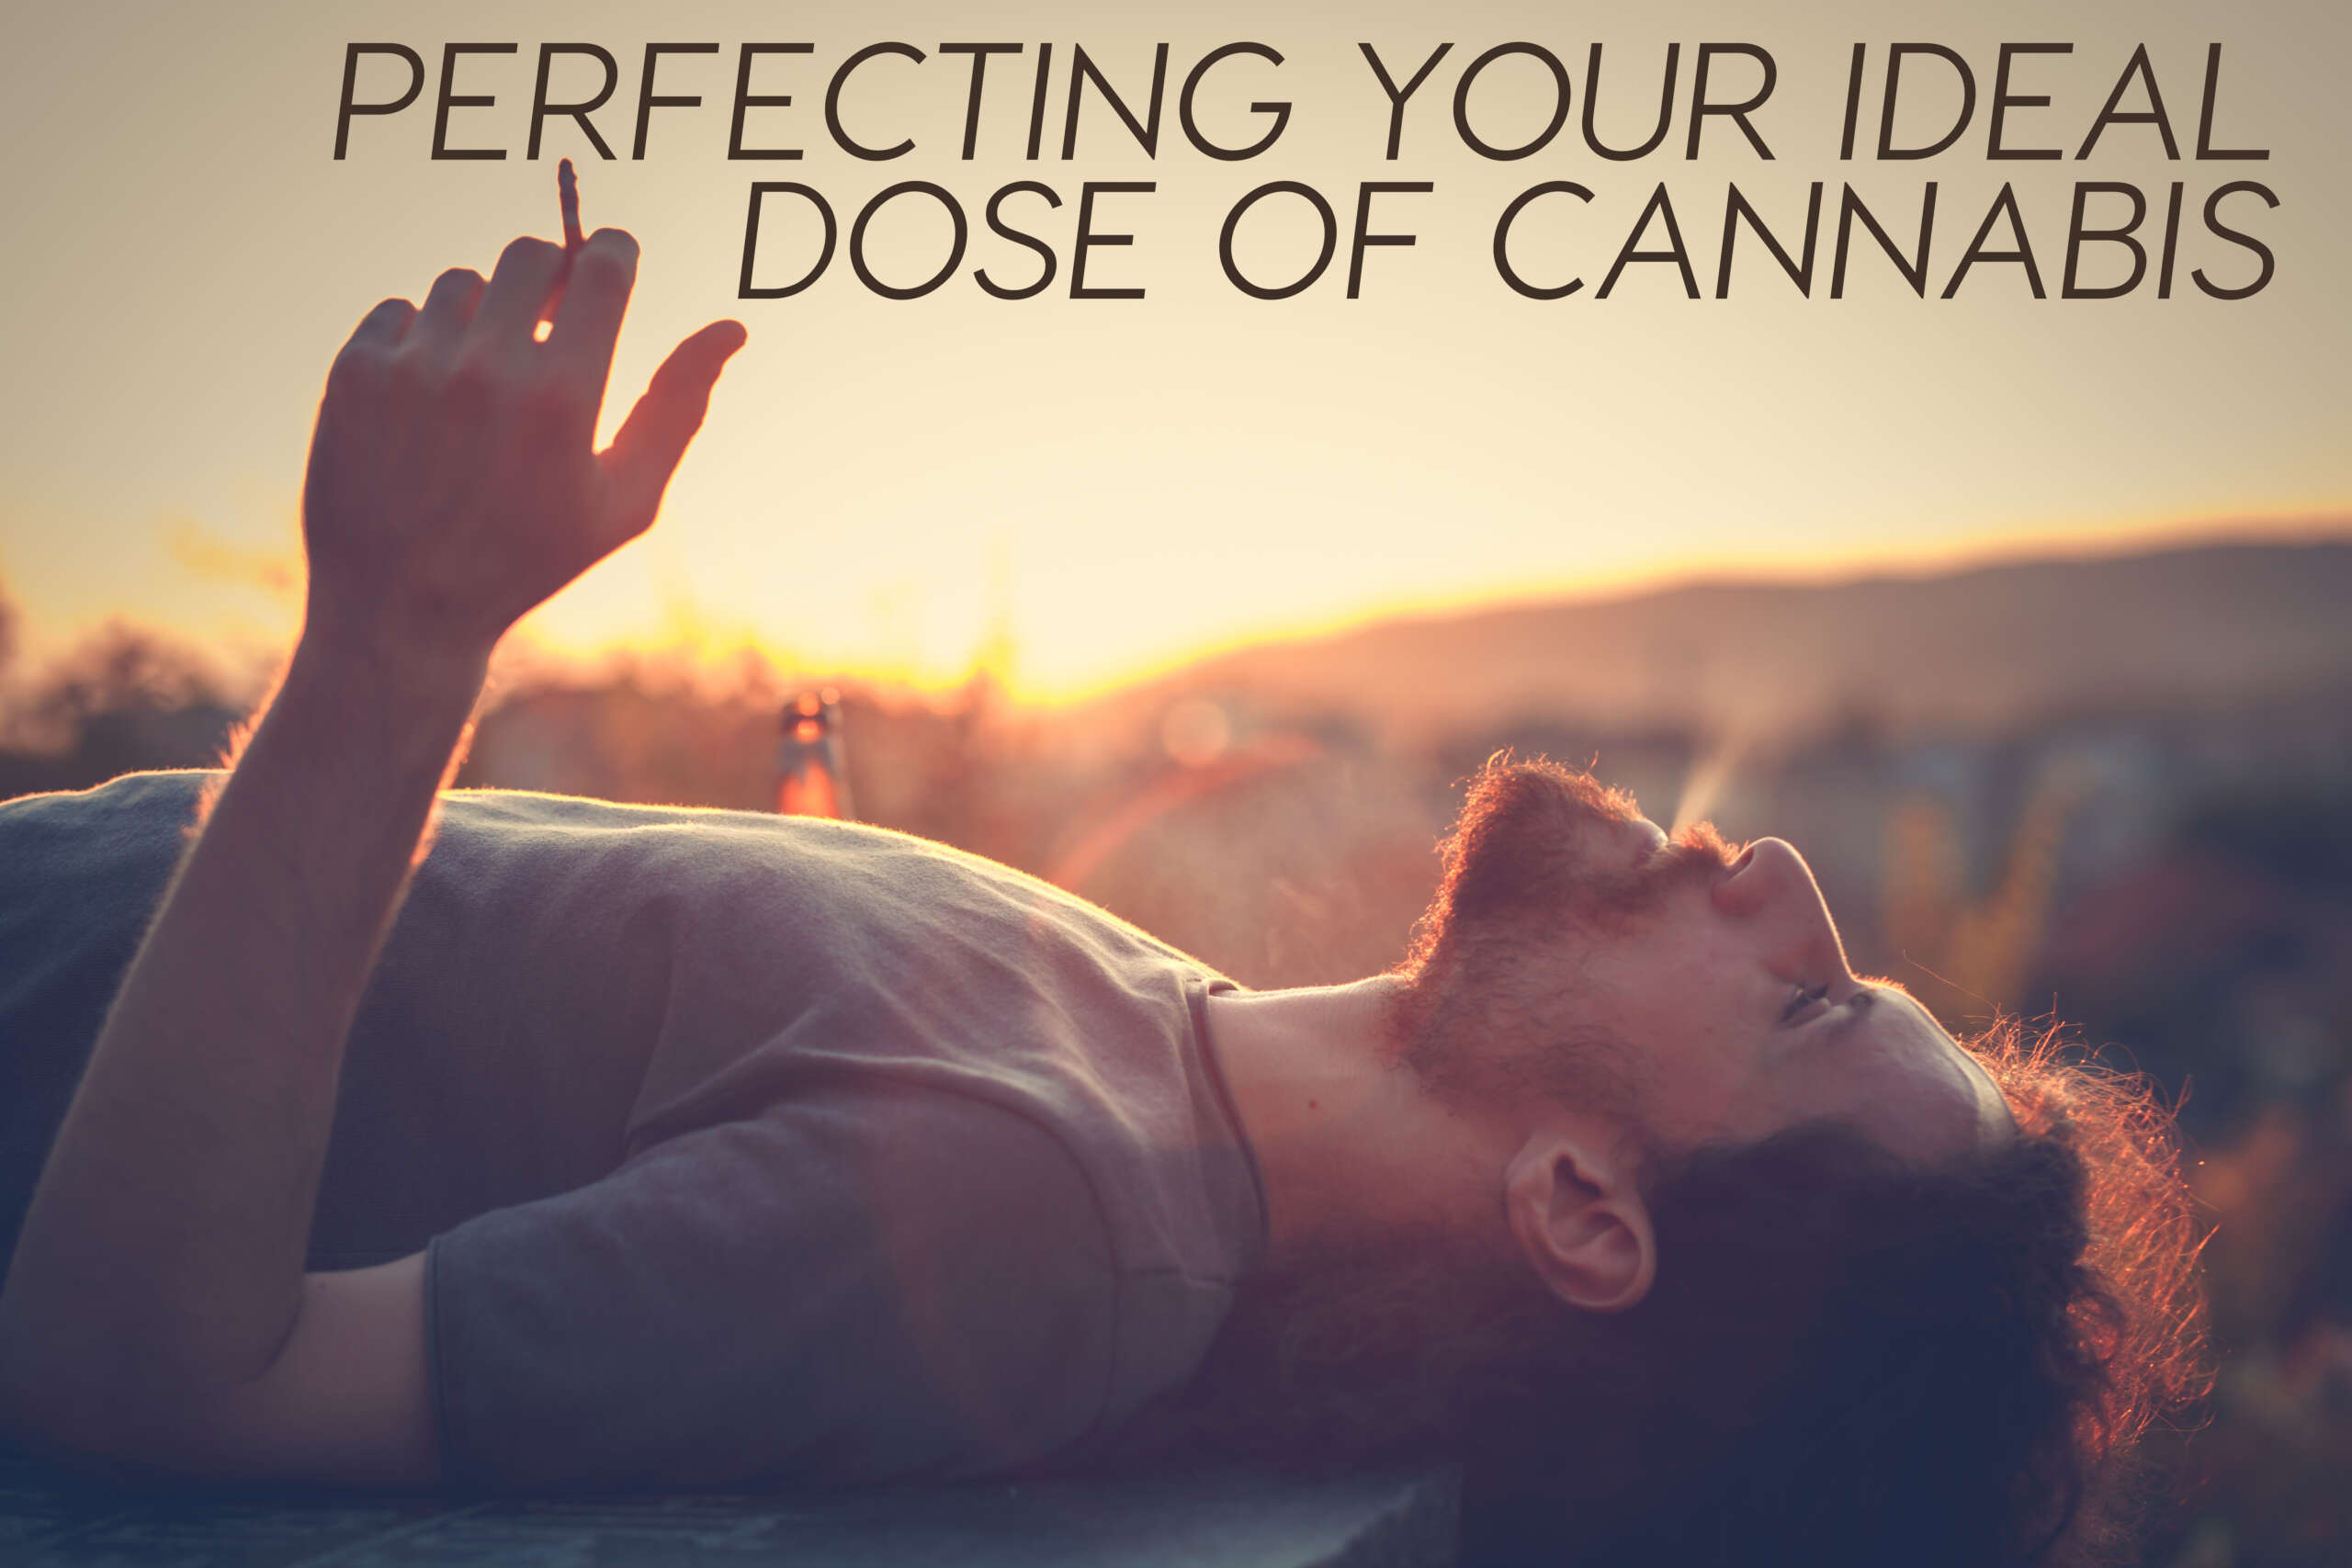 Finding your ideal dose of cannabis brings balance between relaxation & the therapeutic properties of the plant.